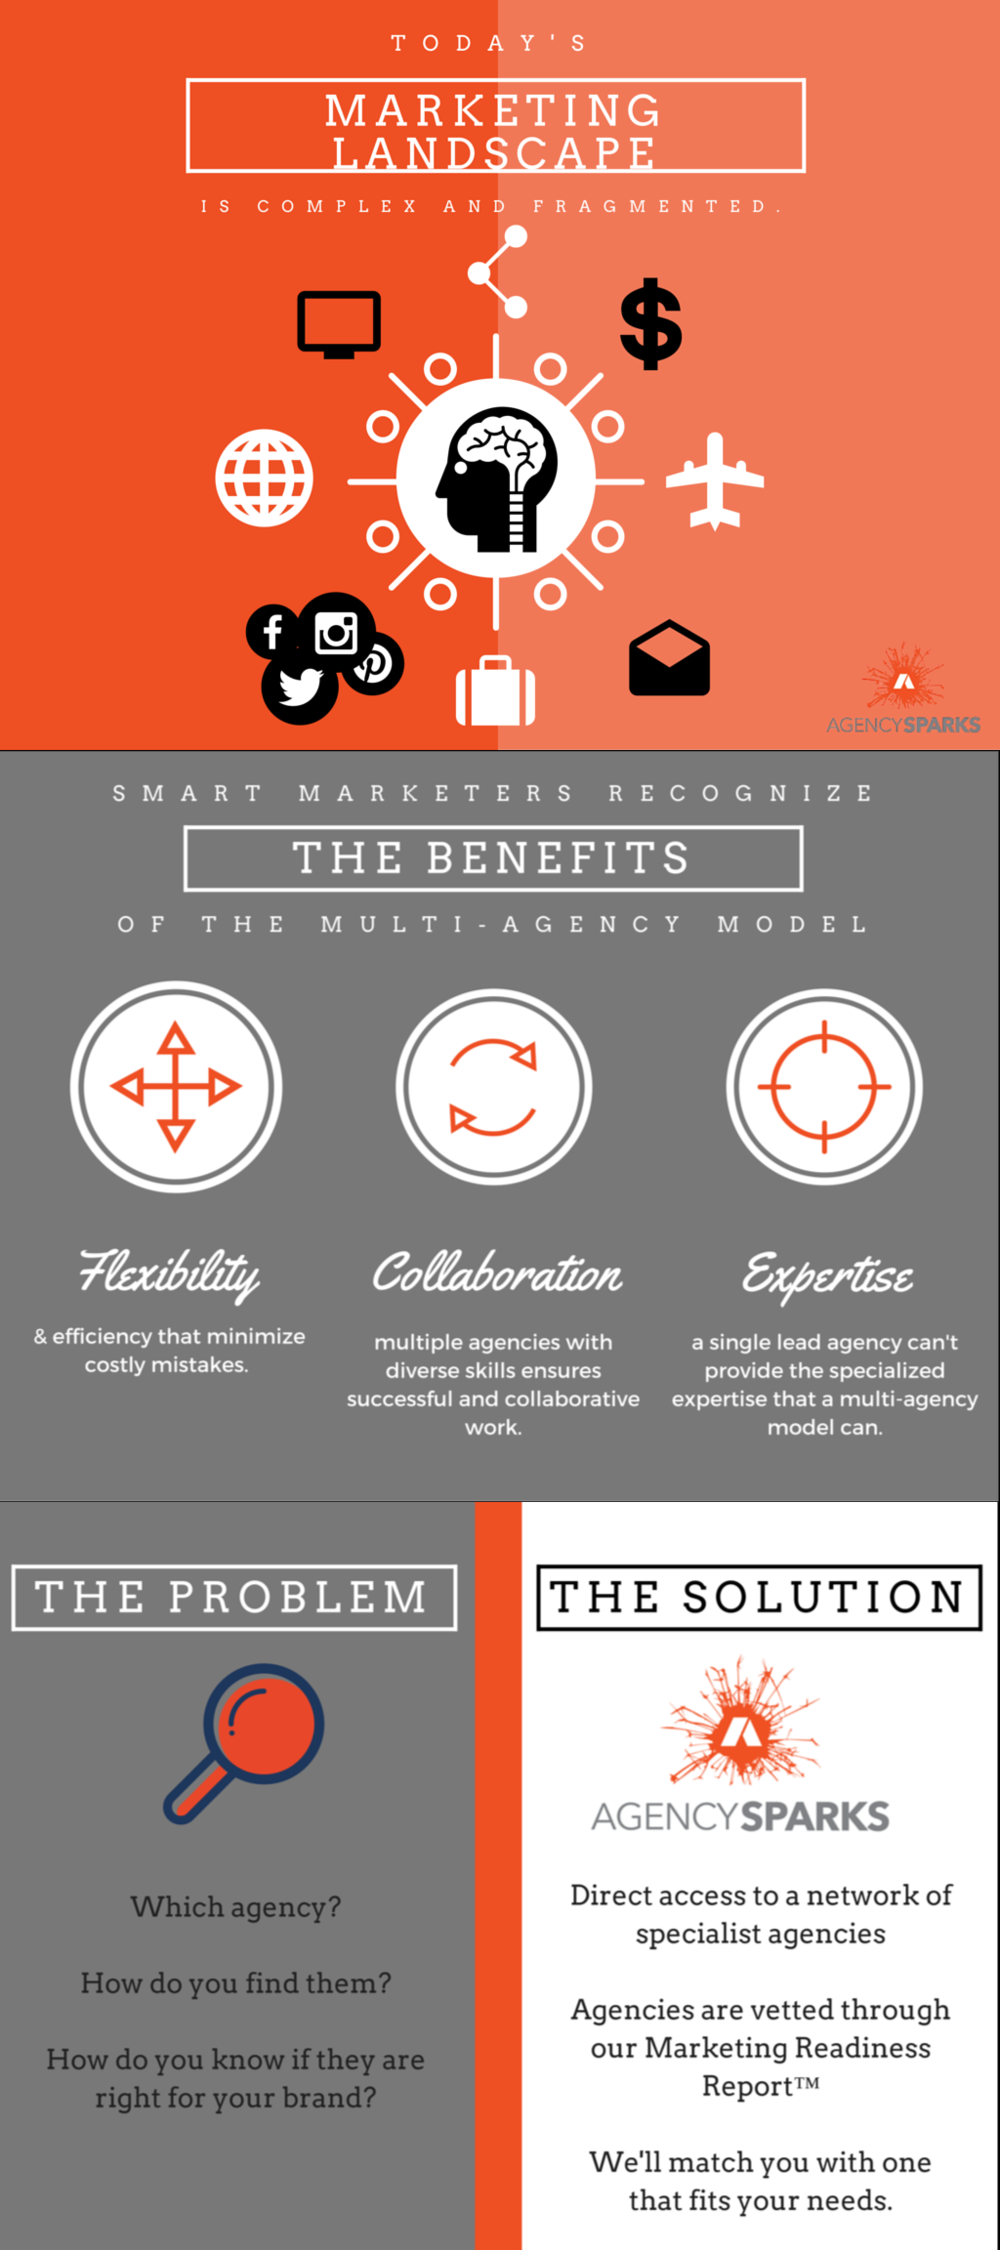 Benefits of specialist marketing agencies infographic - AgencySparks  The number of marketing and advertising agencies has skyrocketed in recent years, making today's marketing landscape complex and fragmented. Smart marketers recognize the benefits of the multi-agency model; flexibility, collaboration, and expertise. Specialized agencies are more efficient and have a diverse skill set, but it how do you know which is right for your brand? Through out network of vetted agencies, AgencySparks helps you make and find the right connection and perfect fit for your needs.